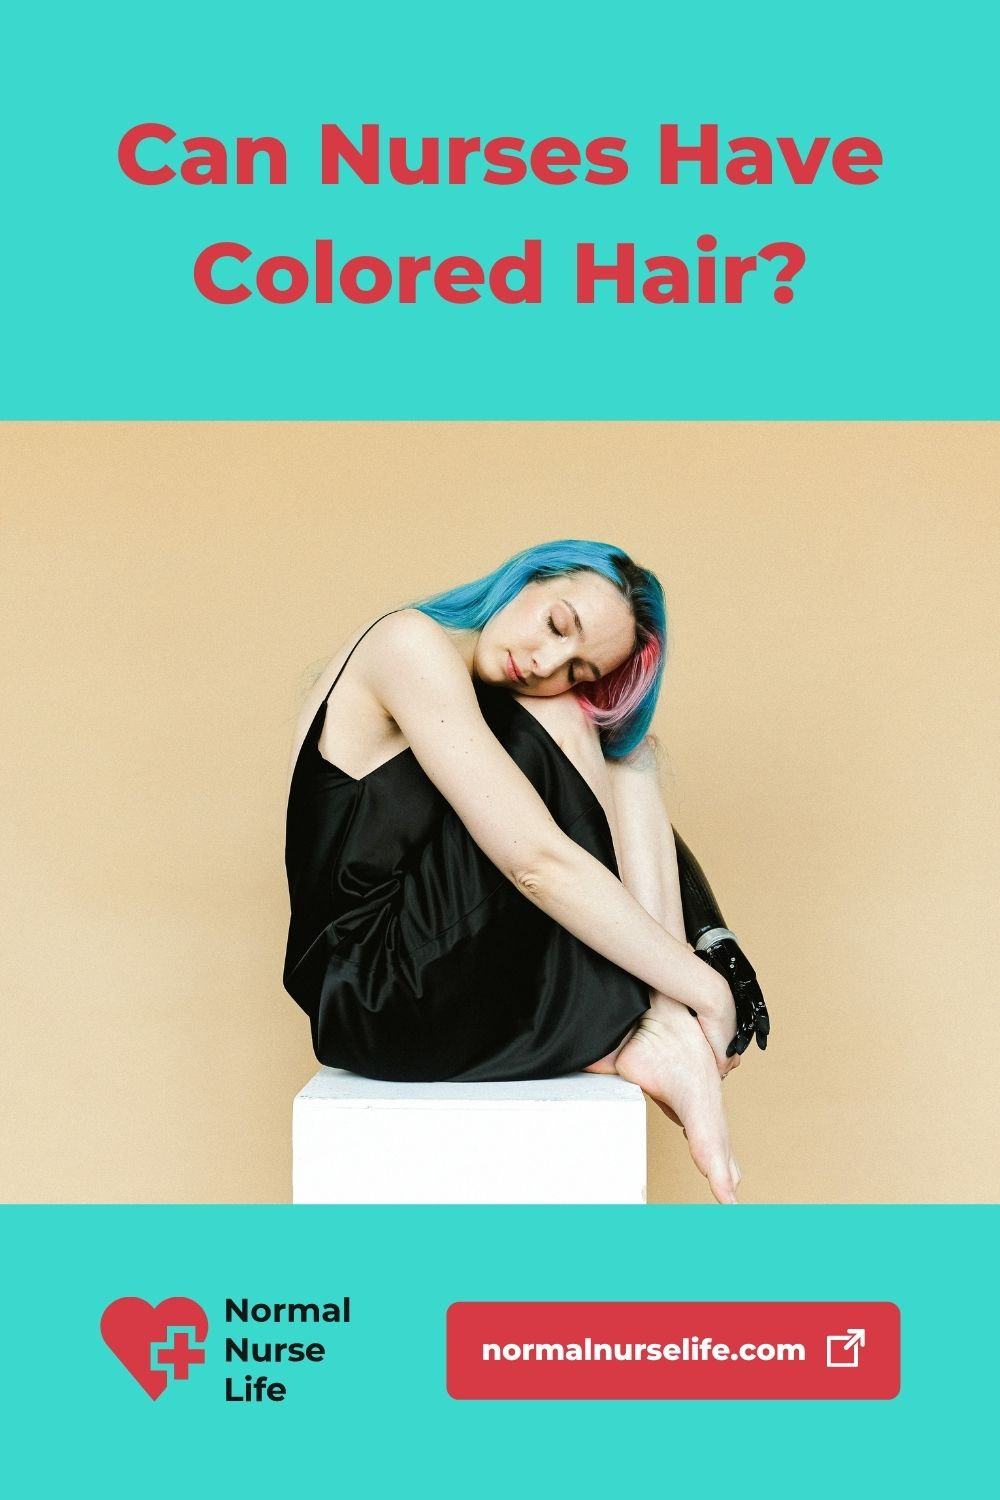 Can nurses have colored hair or not